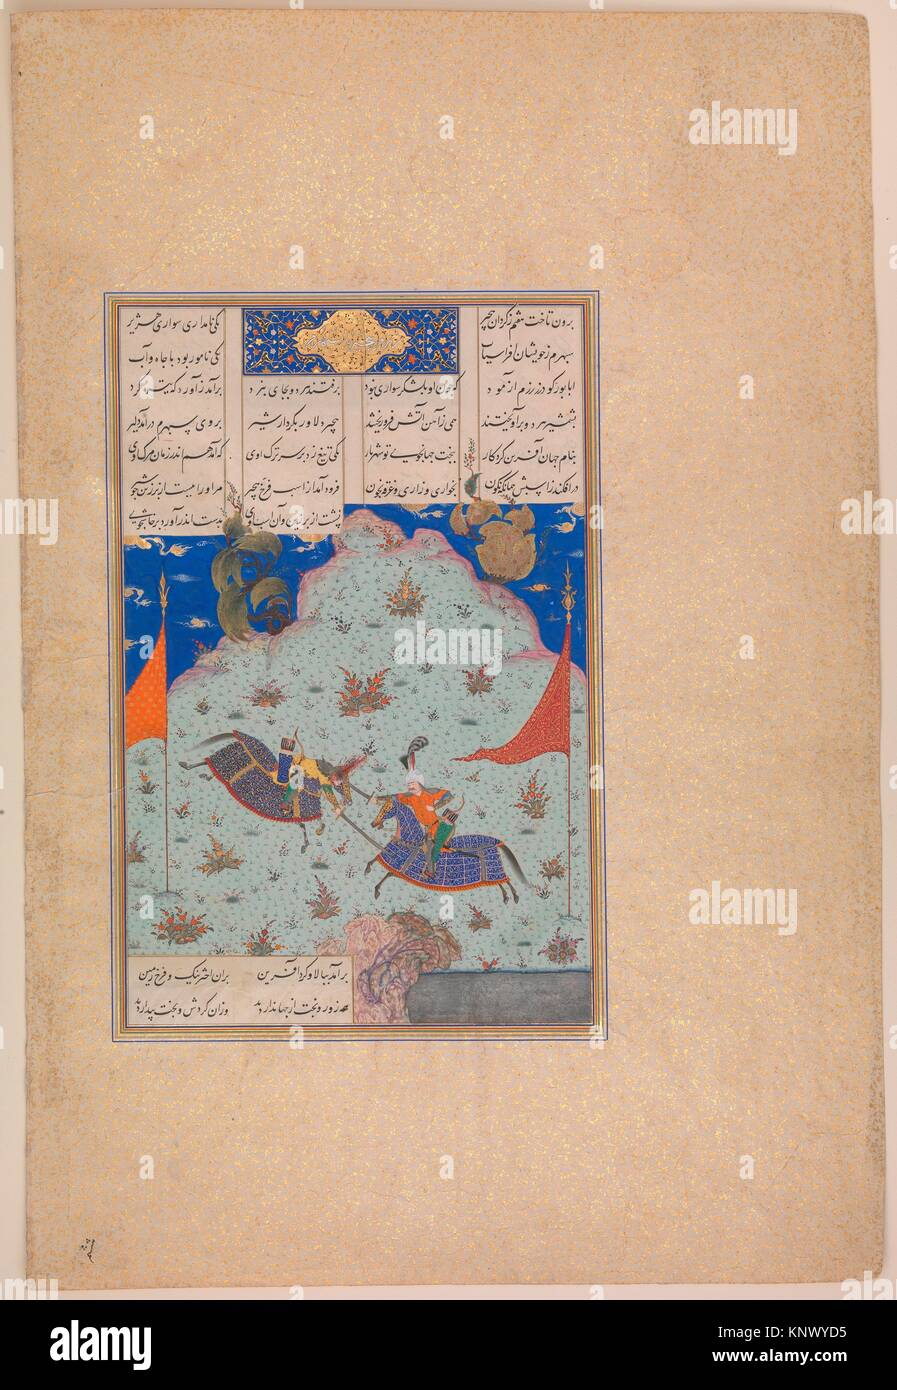 The Sixth Joust of the Rooks: Bizhan Versus Ruyyin, Folio 343r from the Shahnama (Book of Kings) of Shah Tahmasp. - Stock Image